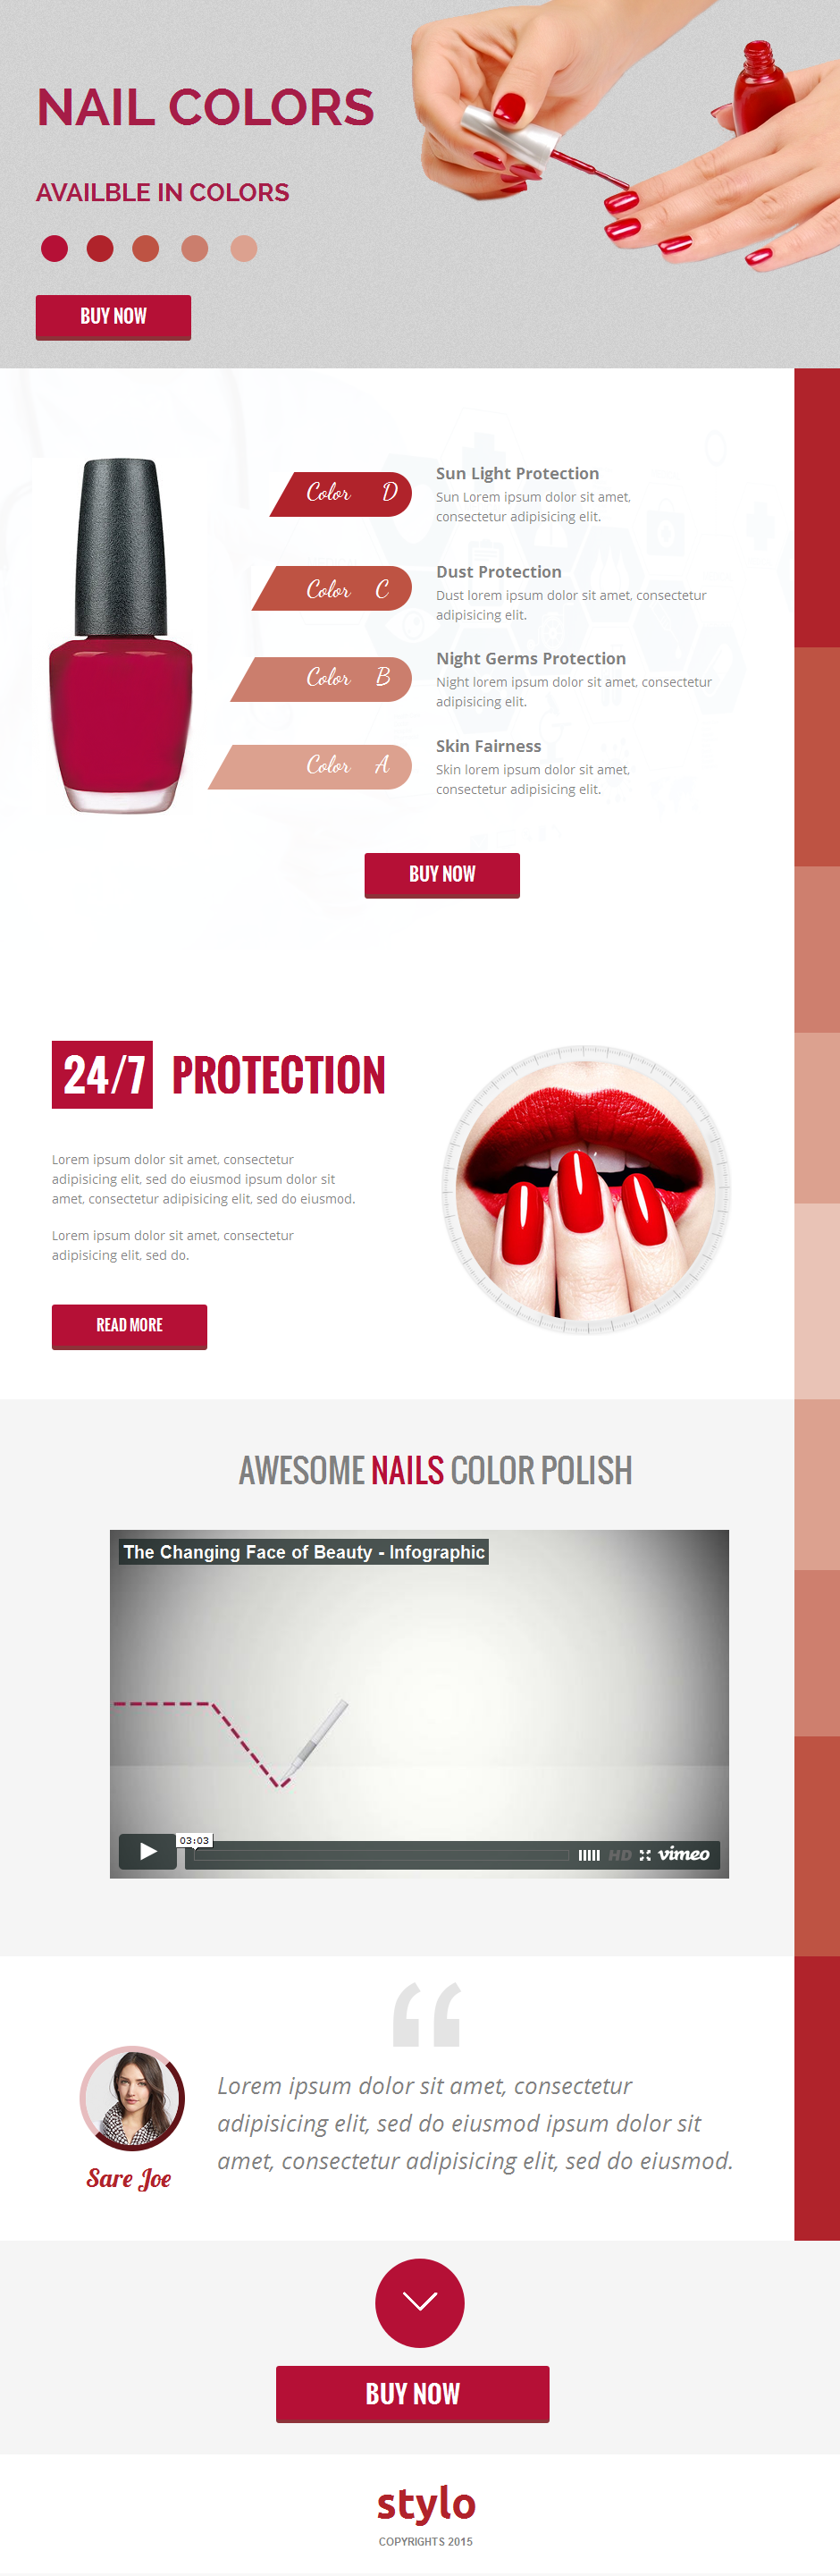 Stylo Unbounce Template - 1